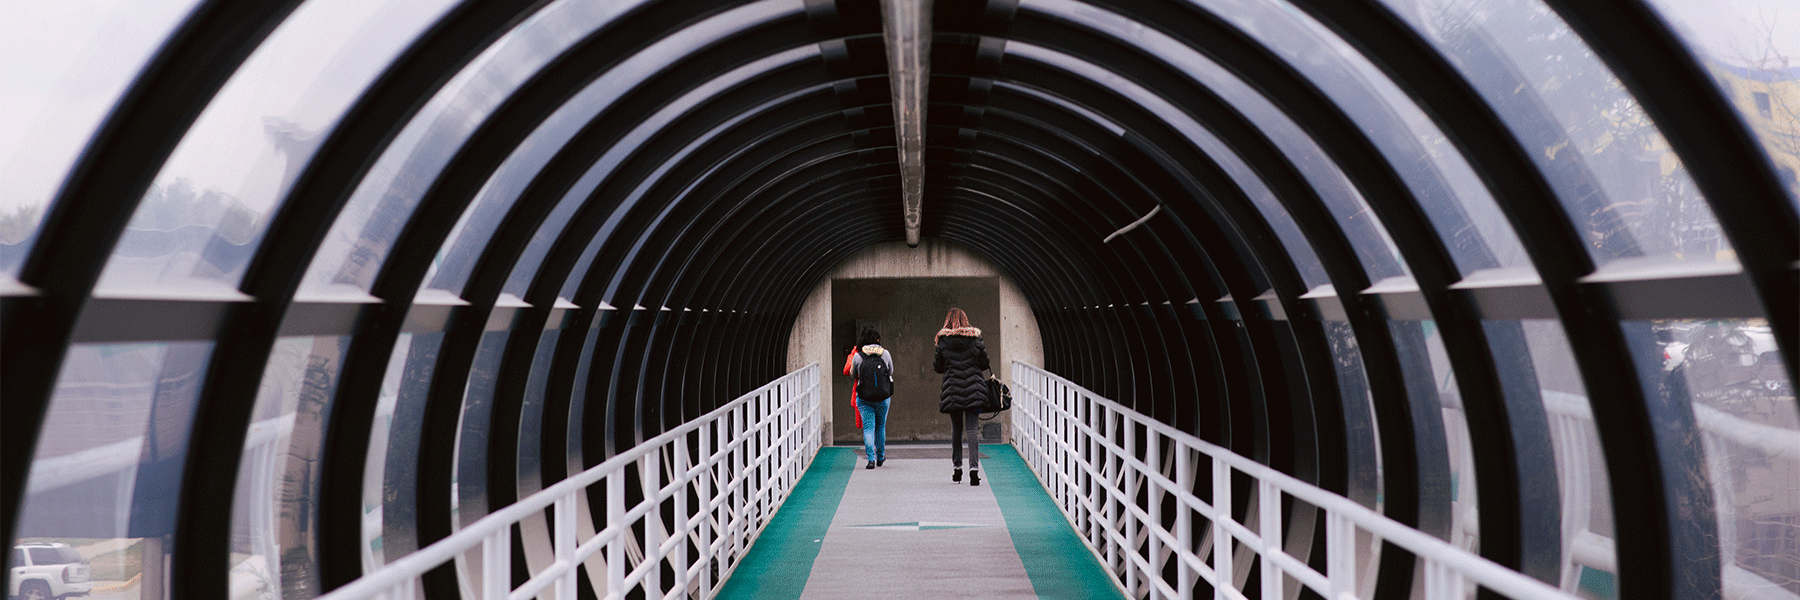 Students walking down the tunnels in winter time.